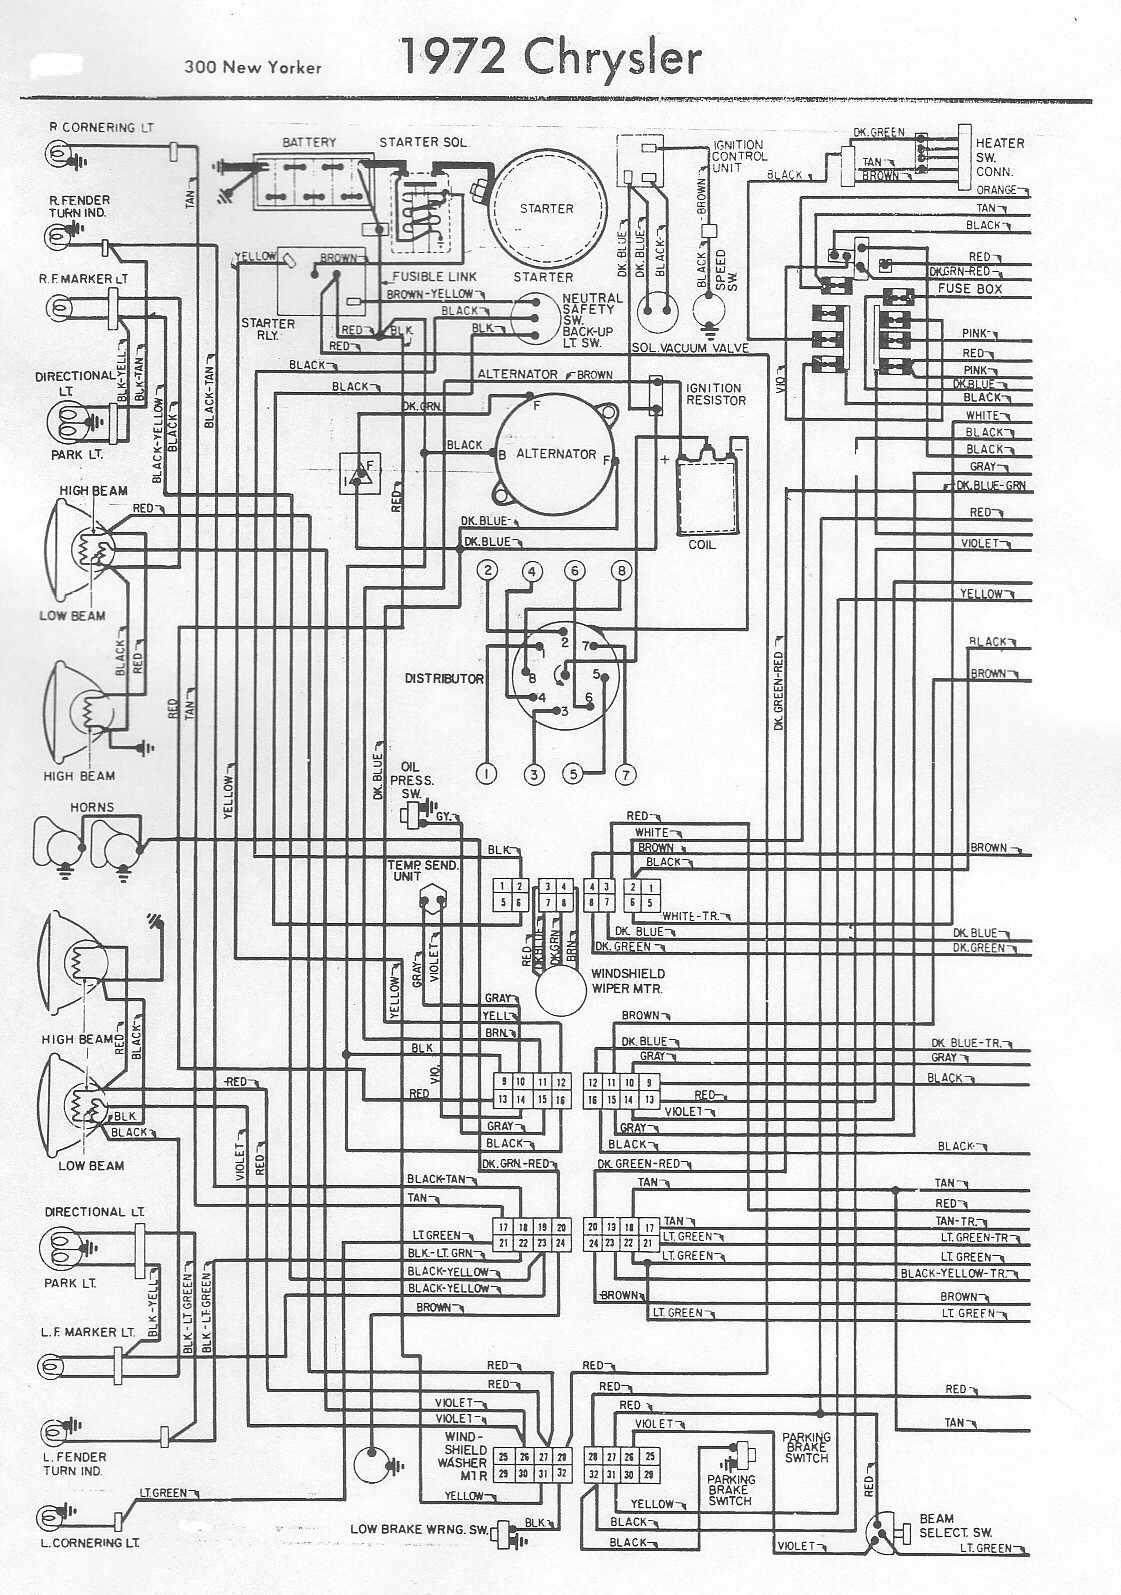 2002 Cadillac Eldorado Wiring Diagrams Electrical Seville Diagram 2000 Schematics